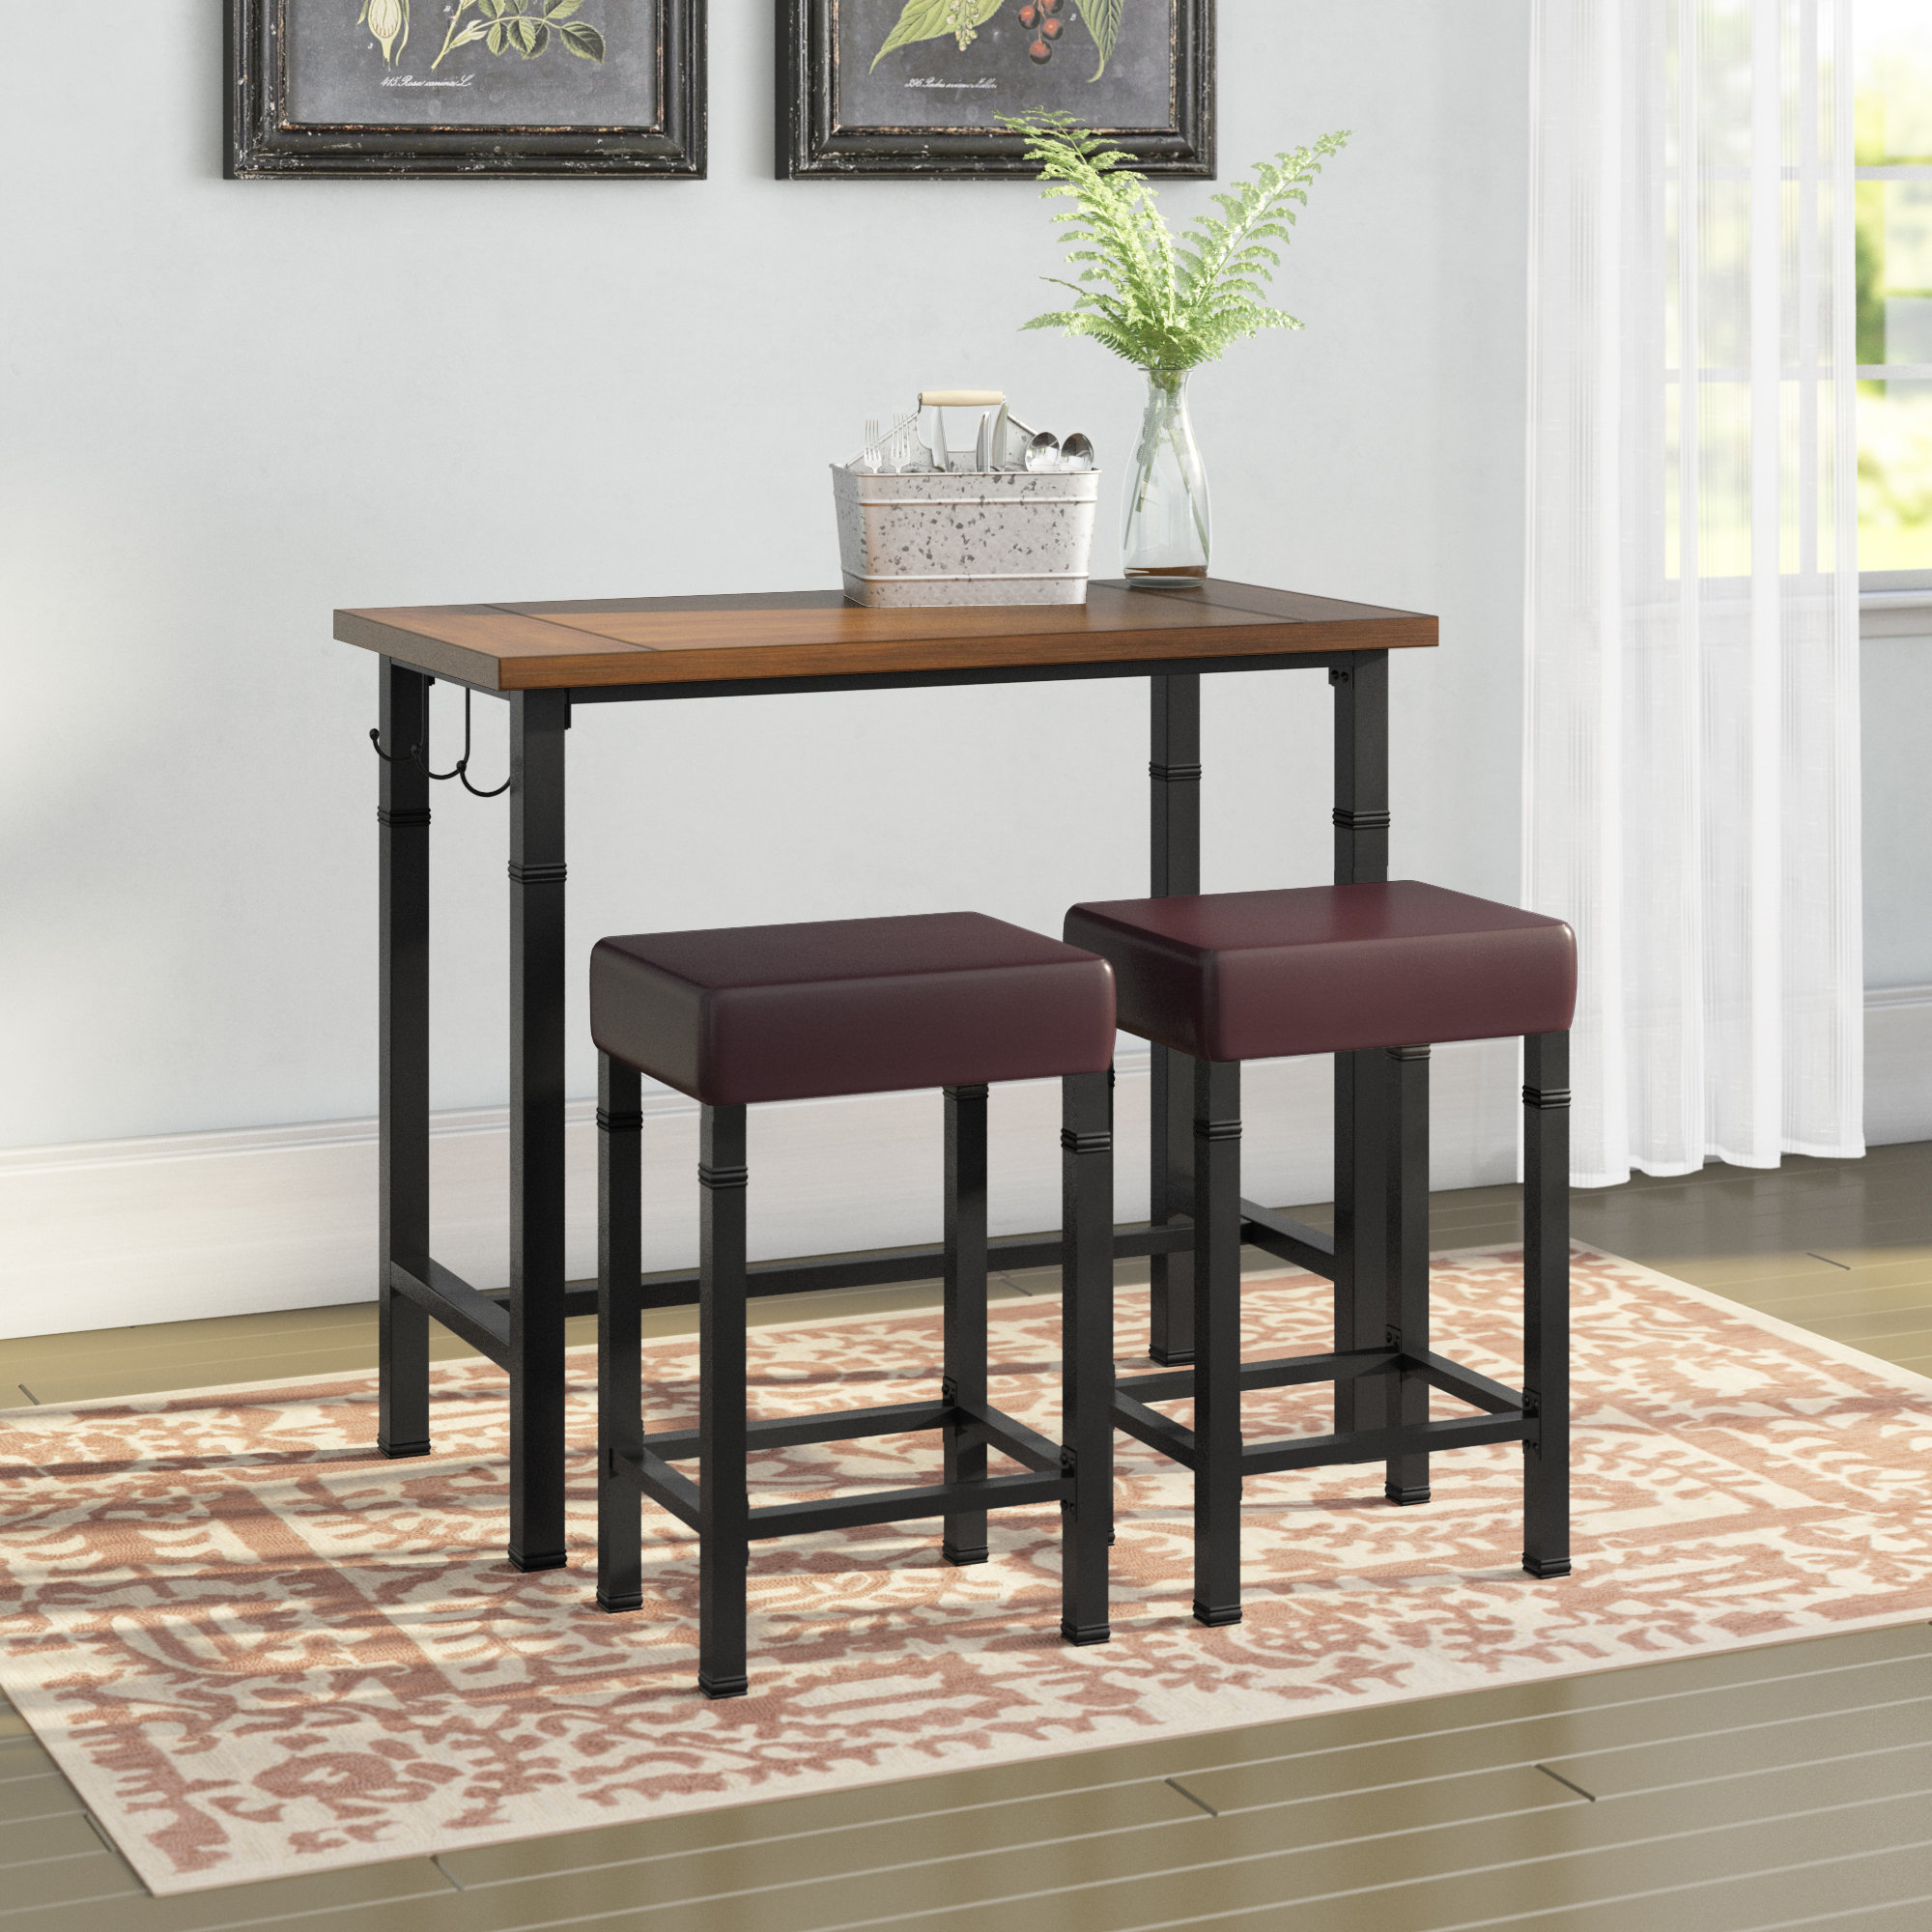 Latest Laurel Foundry Modern Farmhouse Sevigny 3 Piece Pub Table Set In Hood Canal 3 Piece Dining Sets (#8 of 20)